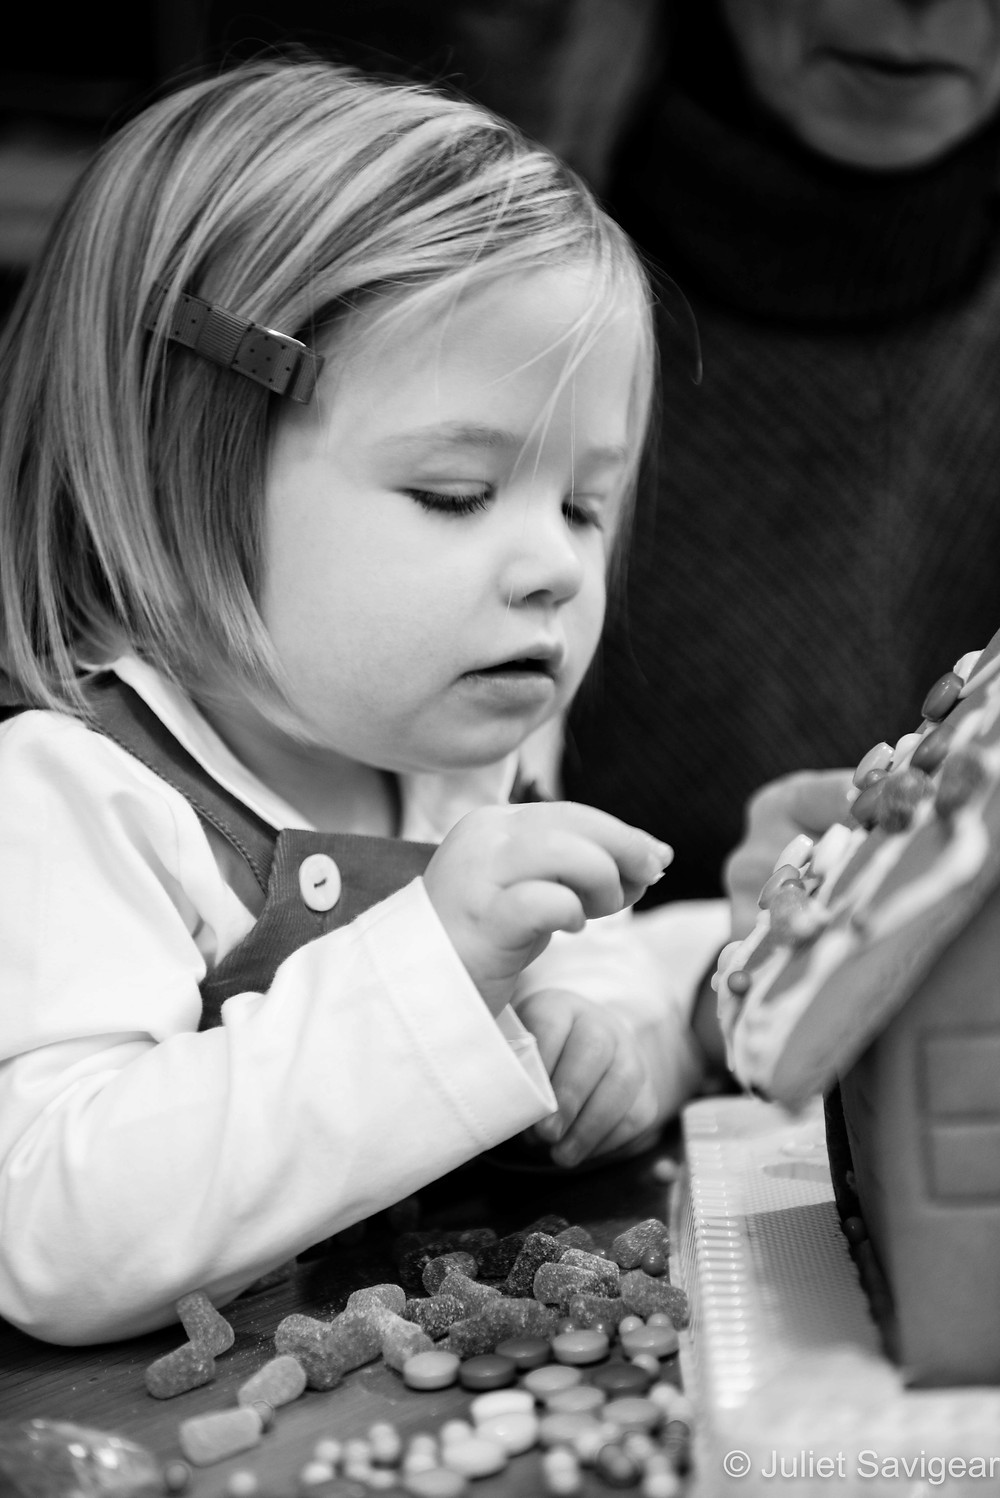 Decorating The Gingerbread House - Children's Photography, Clapham South